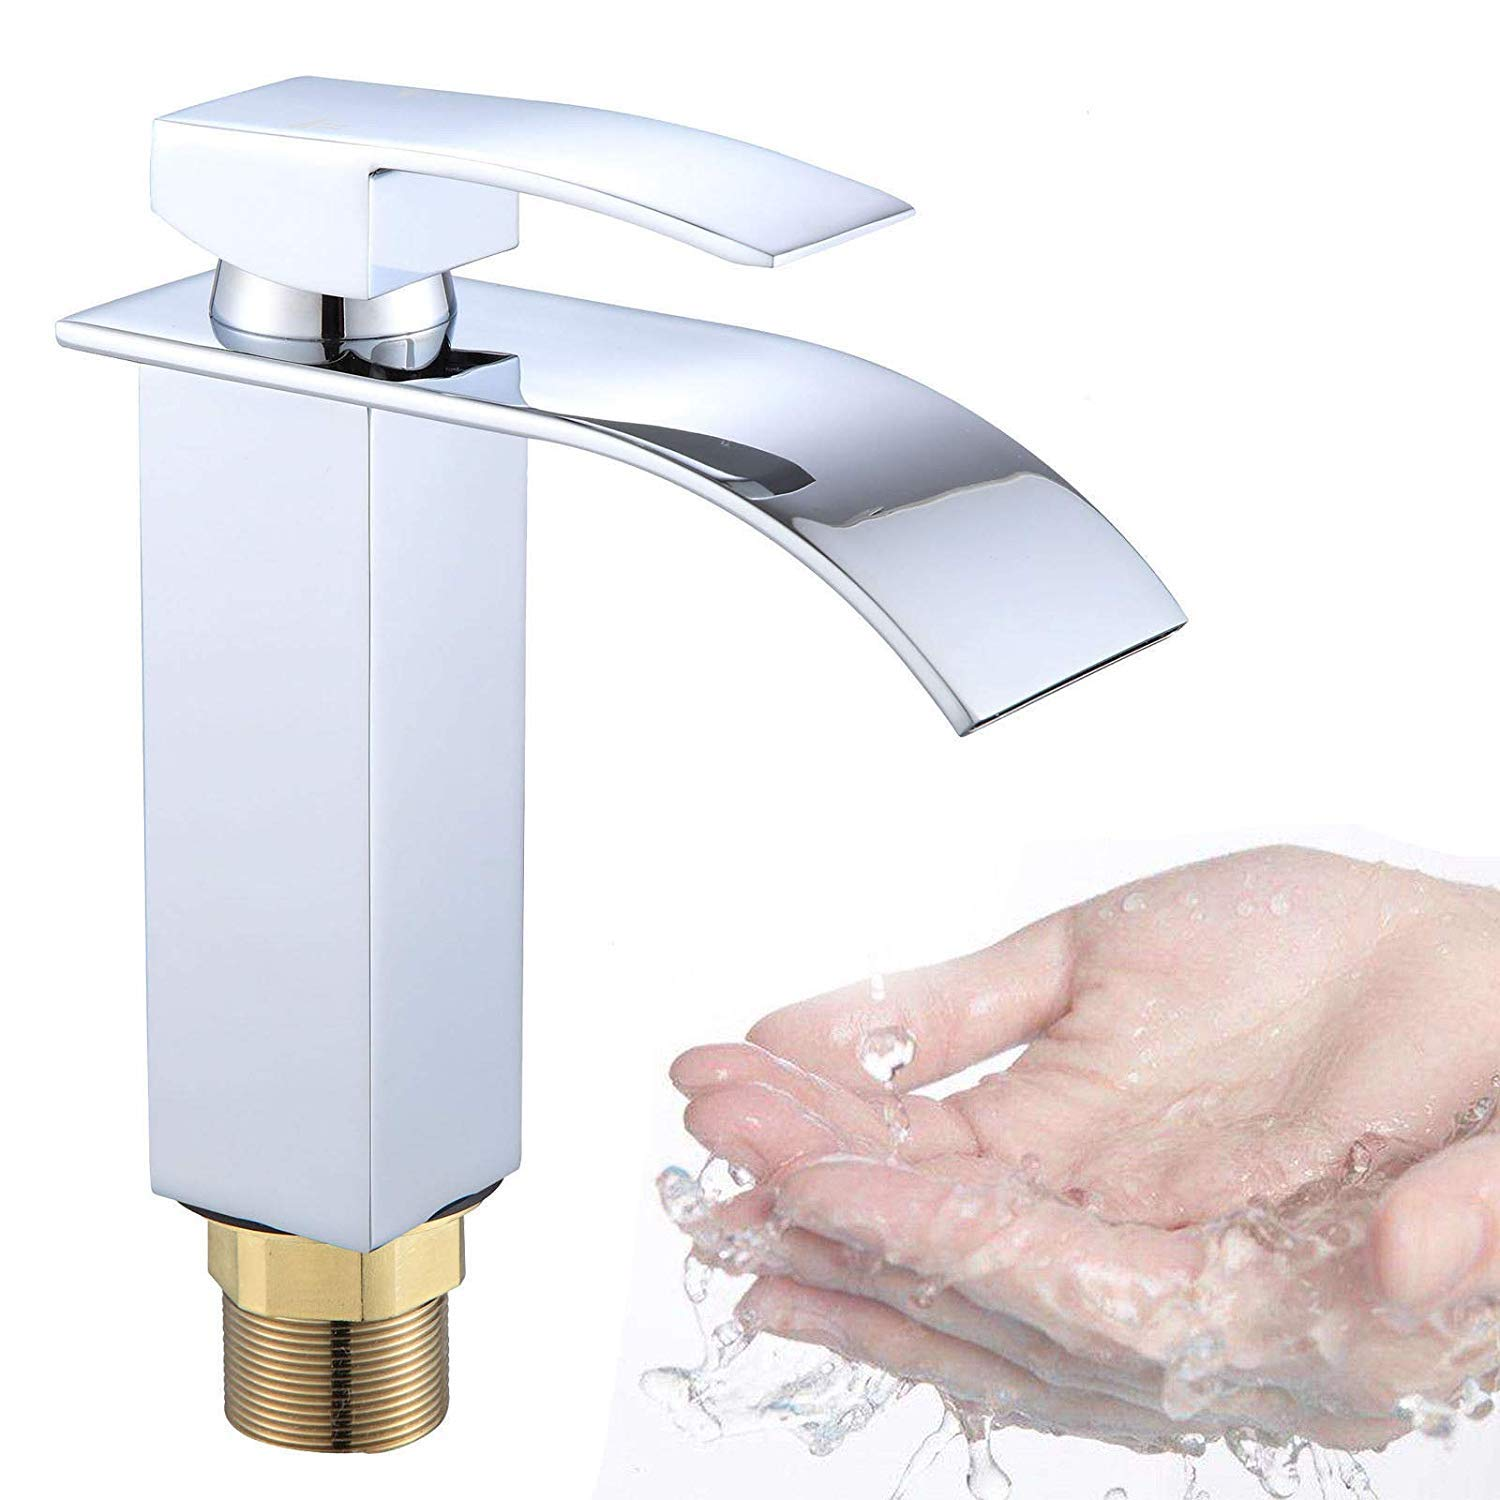 Tap Bathroom Mixer Sink Kitchen Sink Faucet Solid Brass Saving Water Low Pressure Waterfall Corner Faucet Cold/hot Water